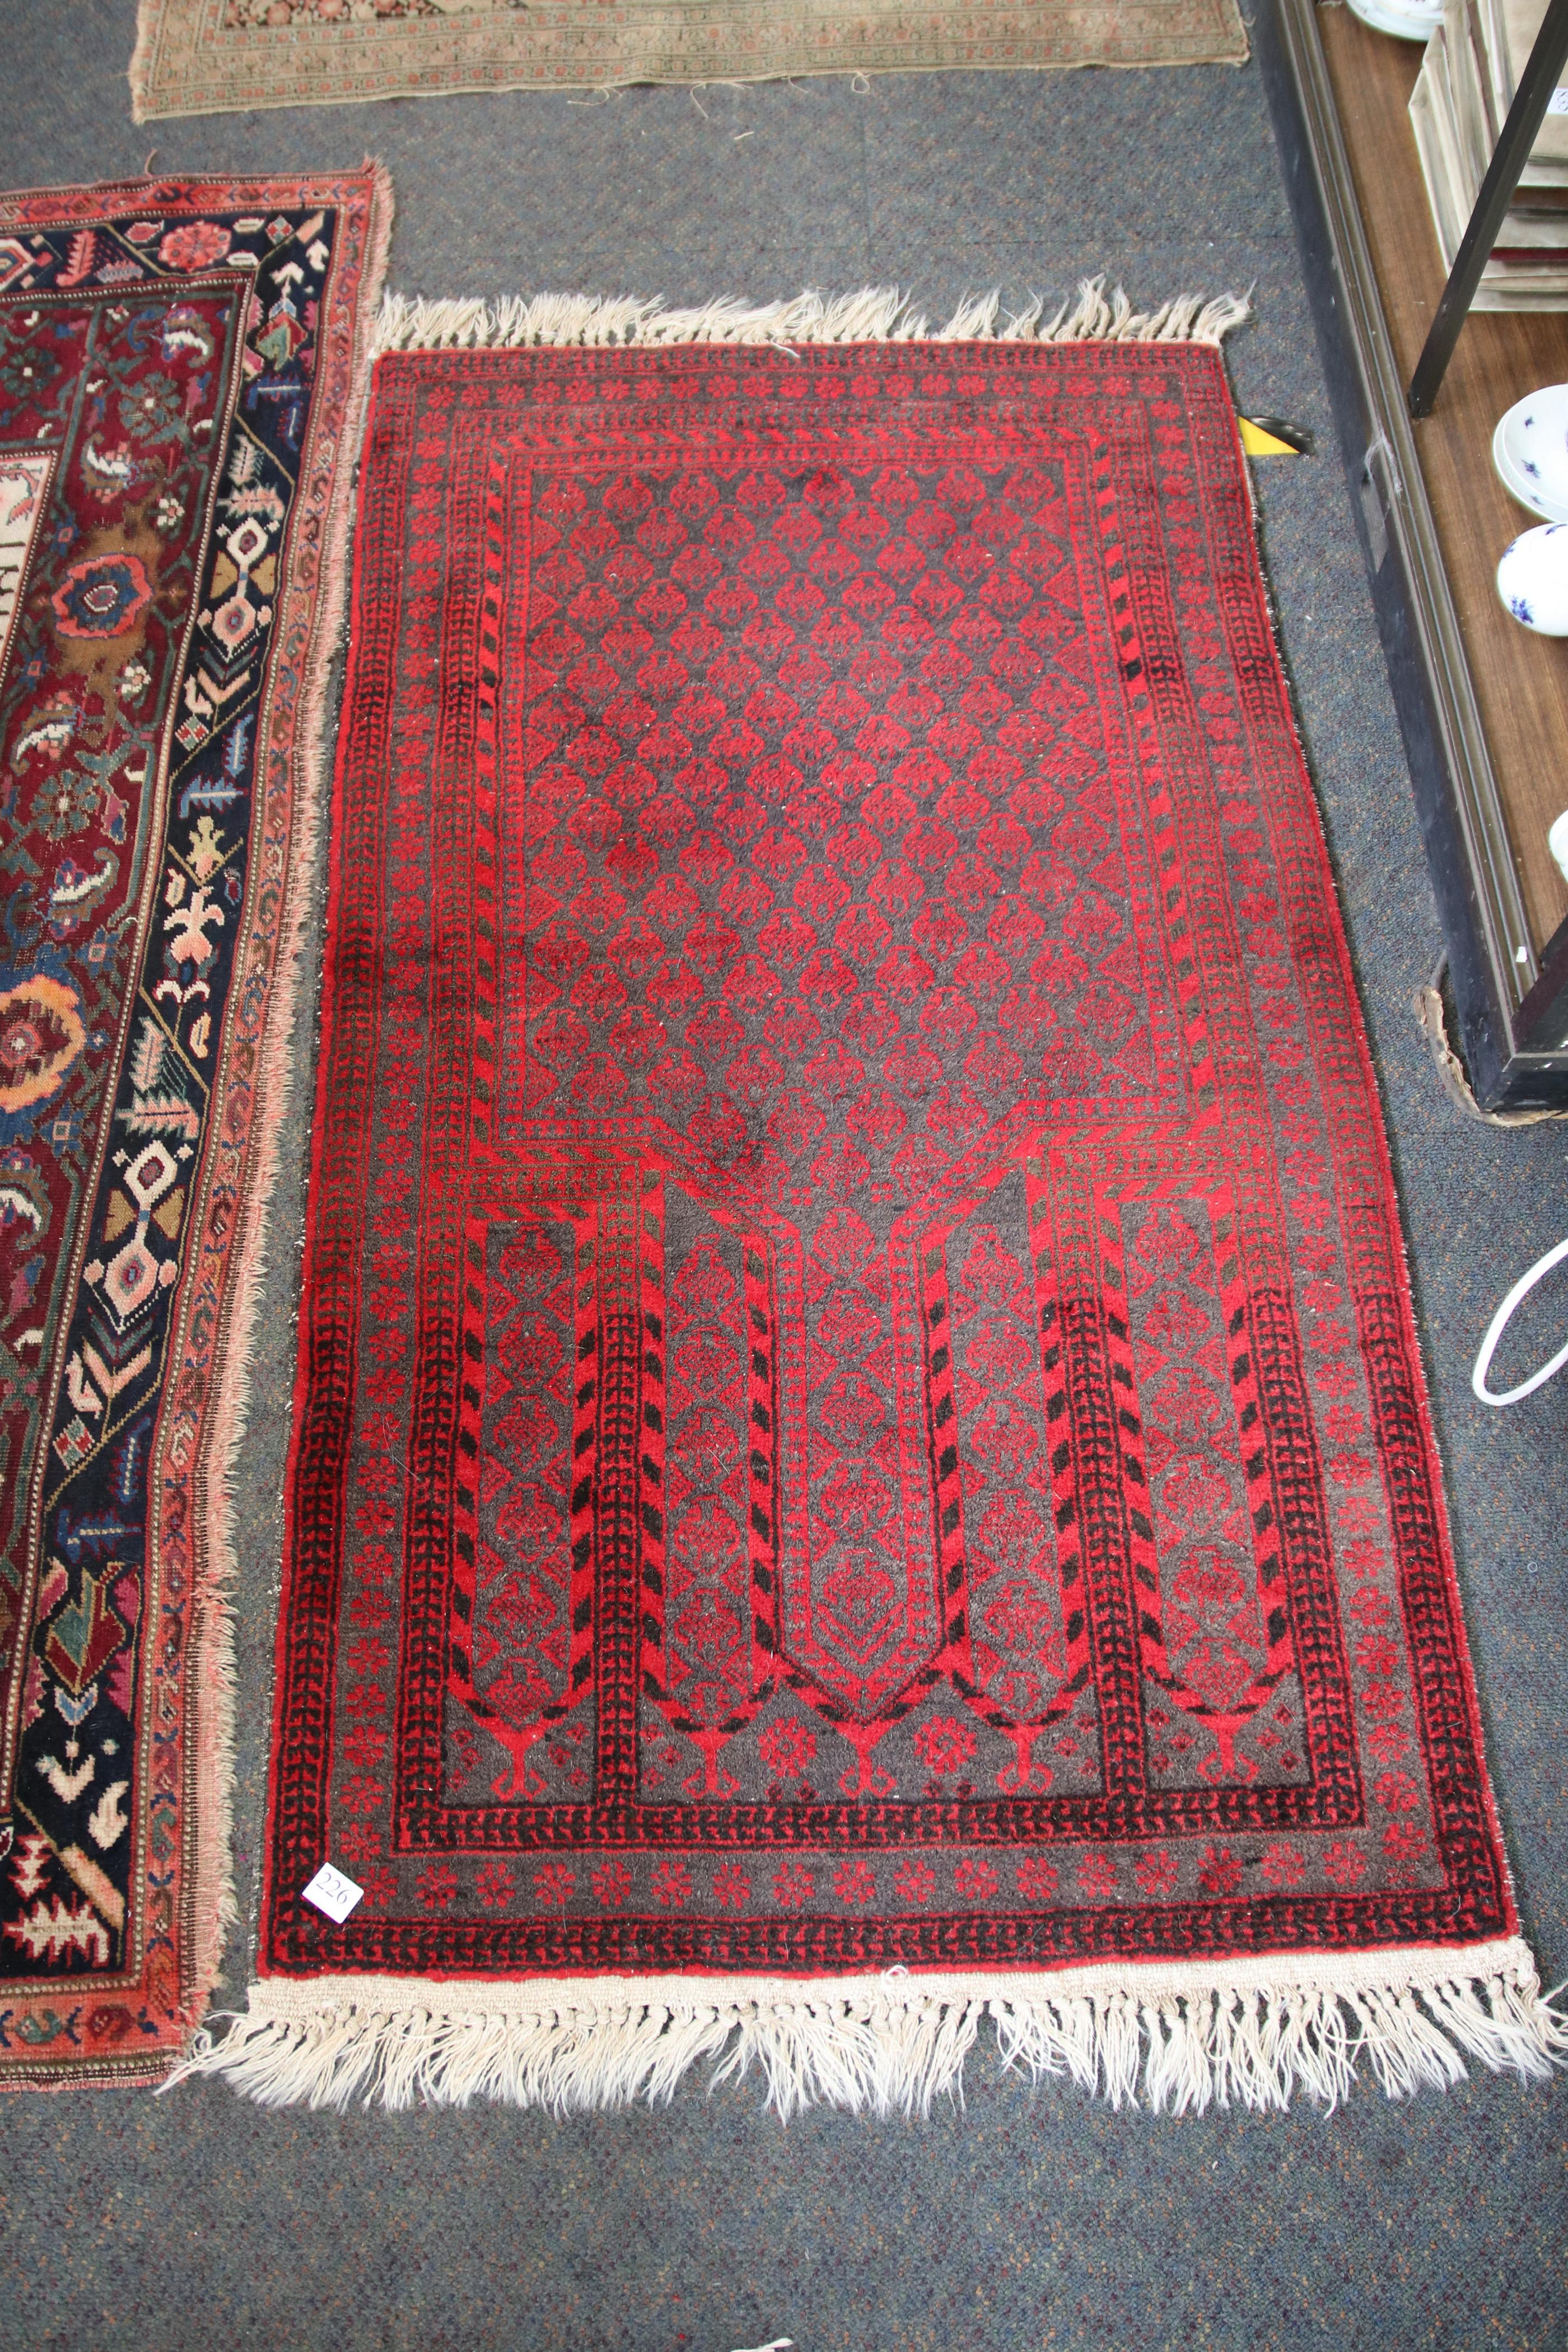 ANTIQUE PERSIAN HAND KNOTTED WOOL PRAYER RUG, RED AND BLACK MEDALLION AND BORDER PATTERN, MEASURES 146CM X 81CM (WEAR AND FRAYED EDGES)